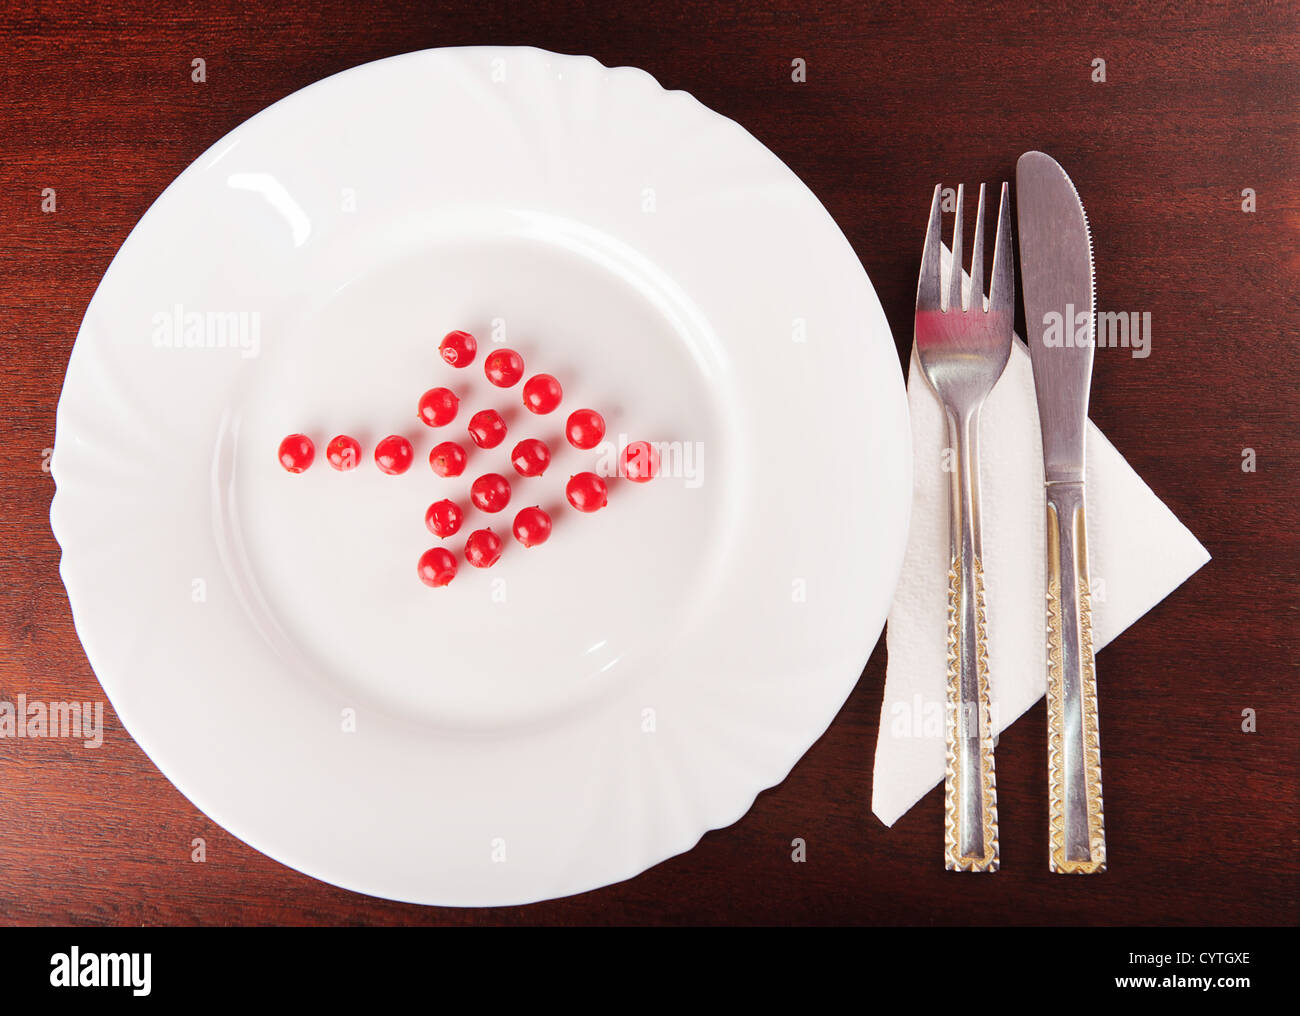 Arrow from red balls on white shows the direction to silverware Stock Photo